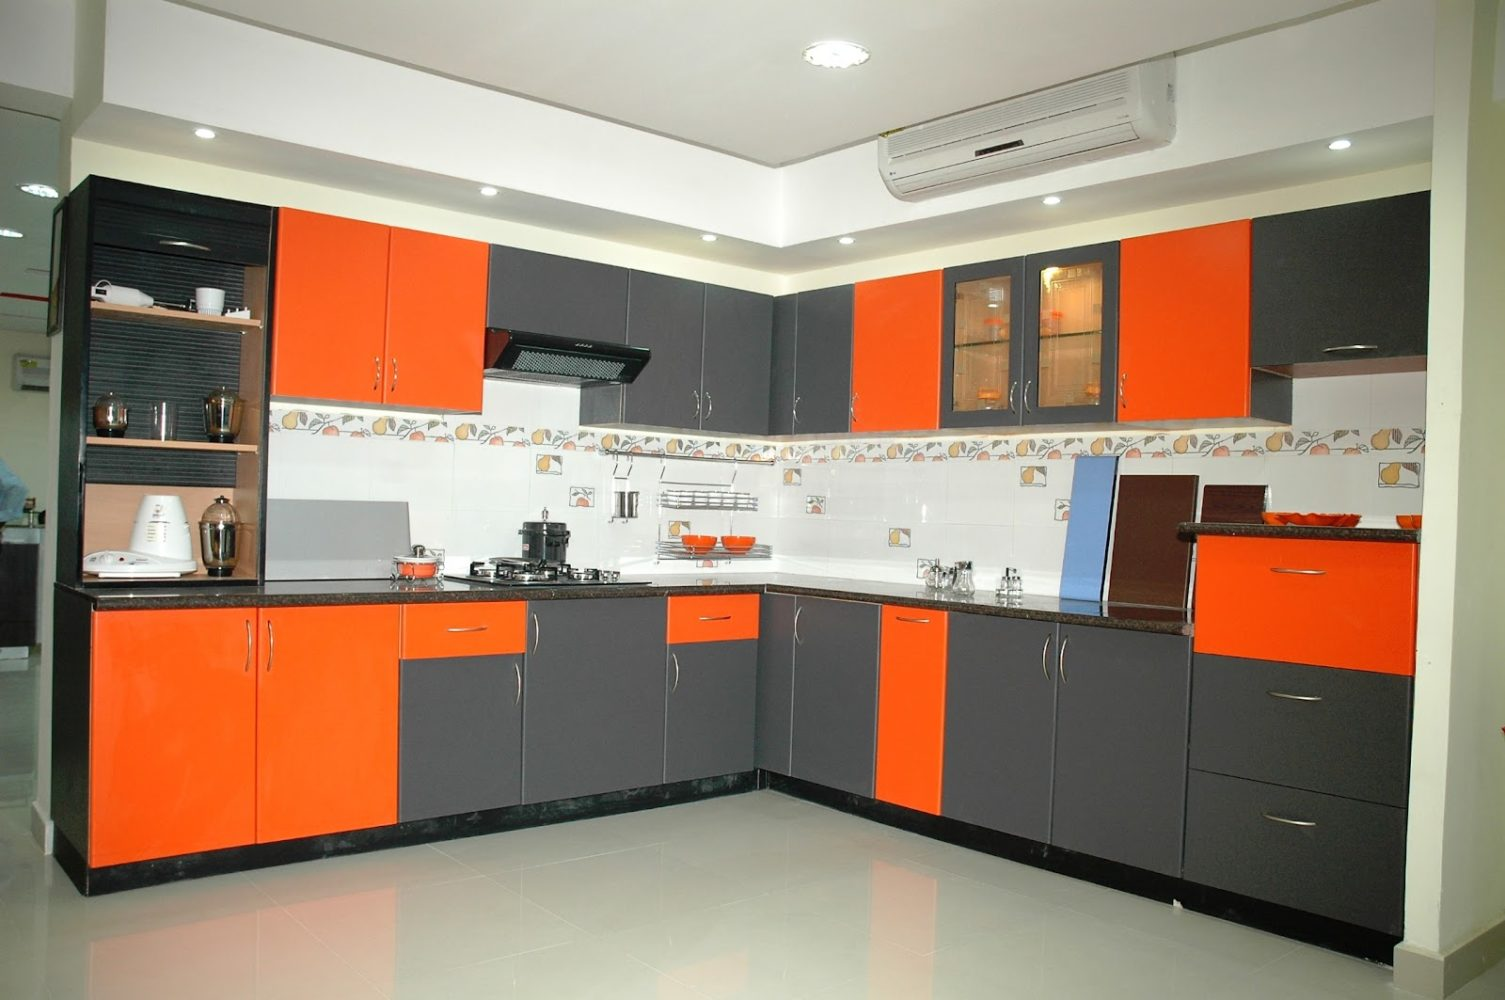 Mixture of colors in kitchen cabinets - Taskmasters Dubai